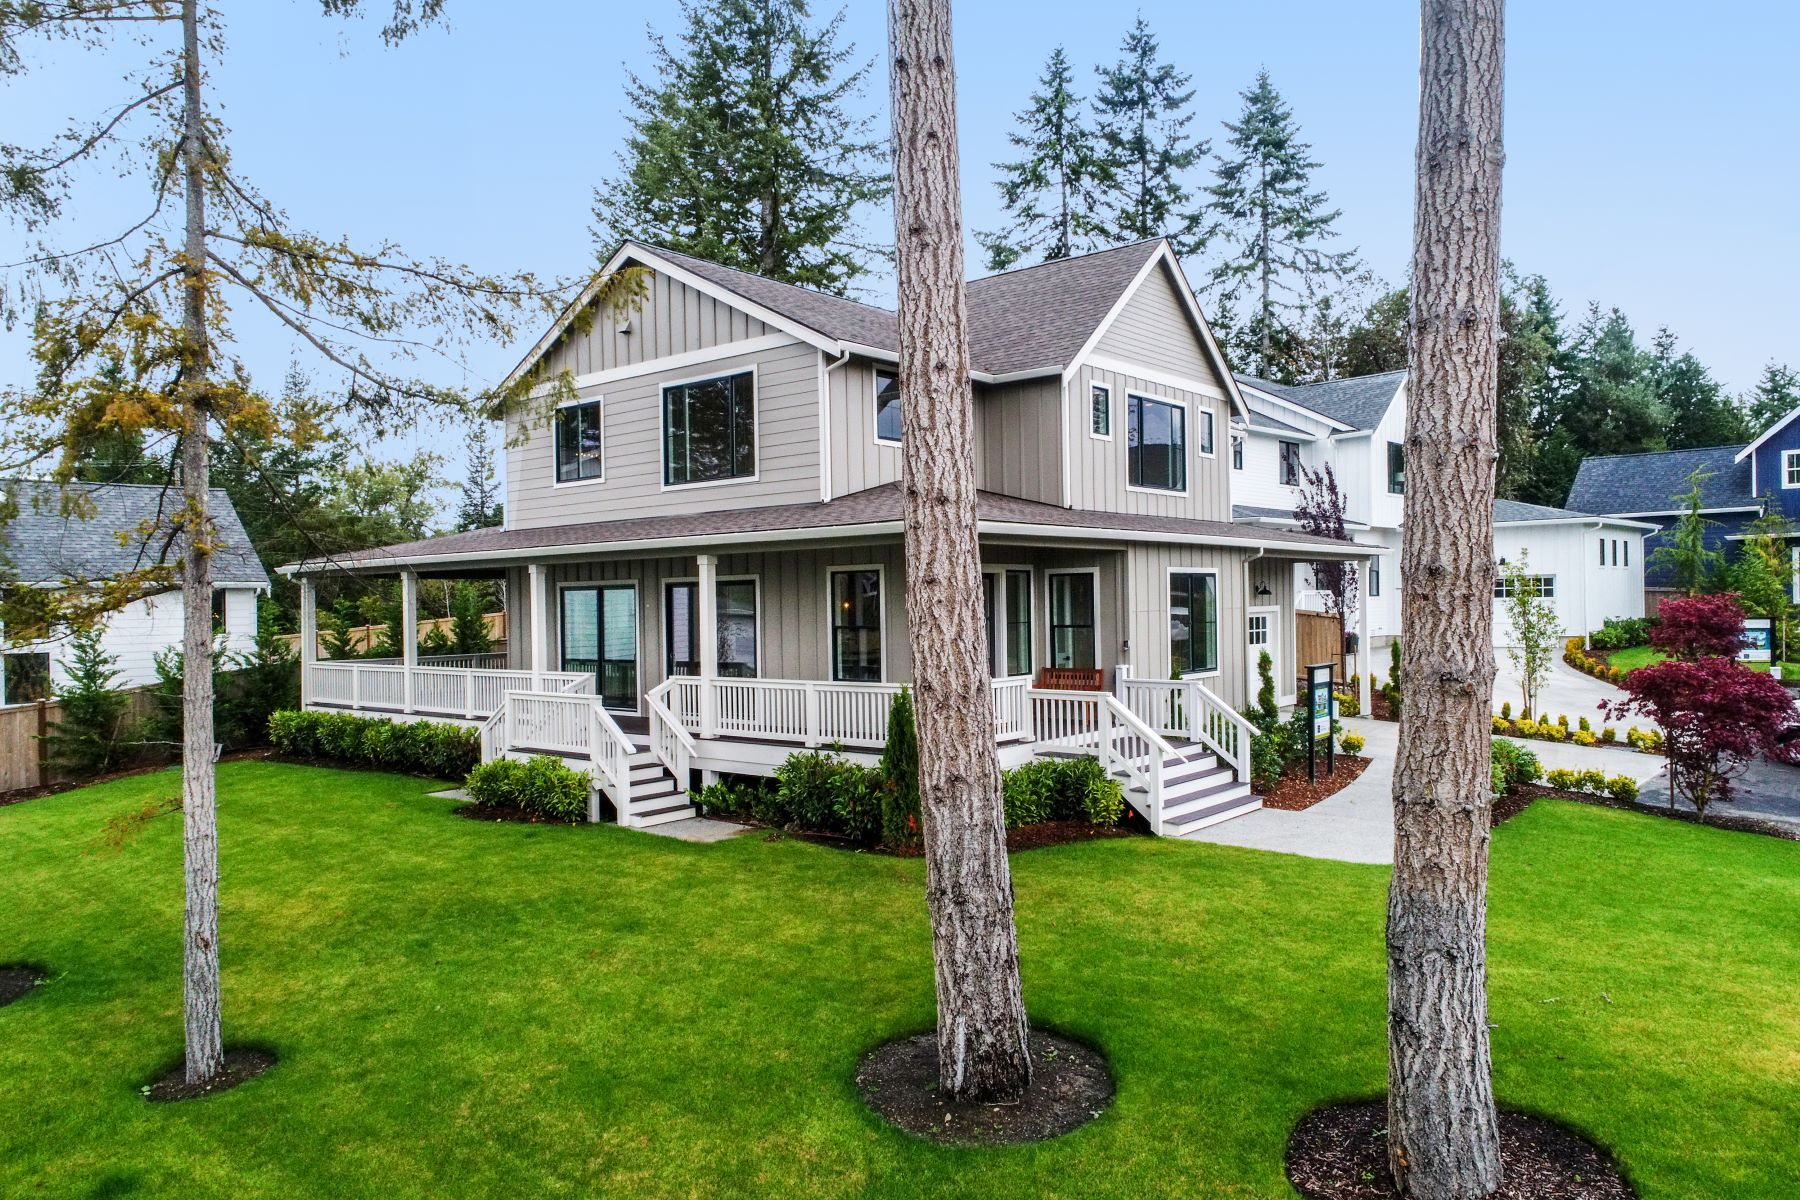 Single Family Homes for Sale at 8680 NE Reserve Way, Bainbridge Island, WA 98110 8680 NE Reserve Way Bainbridge Island, Washington 98110 United States